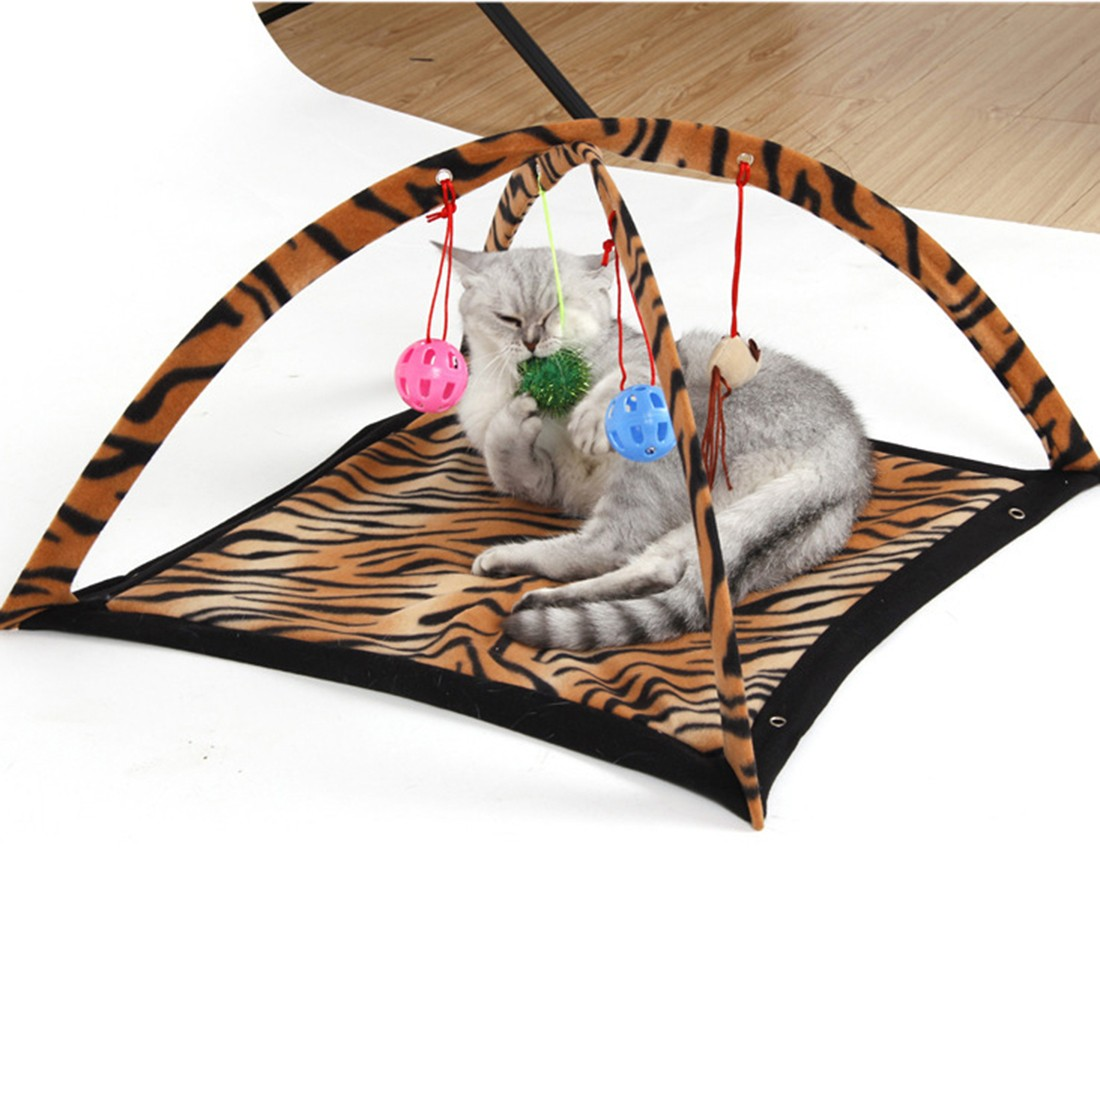 Popular Plastic Cat Furniture Buy Cheap Plastic Cat Furniture Lots From China Plastic Cat